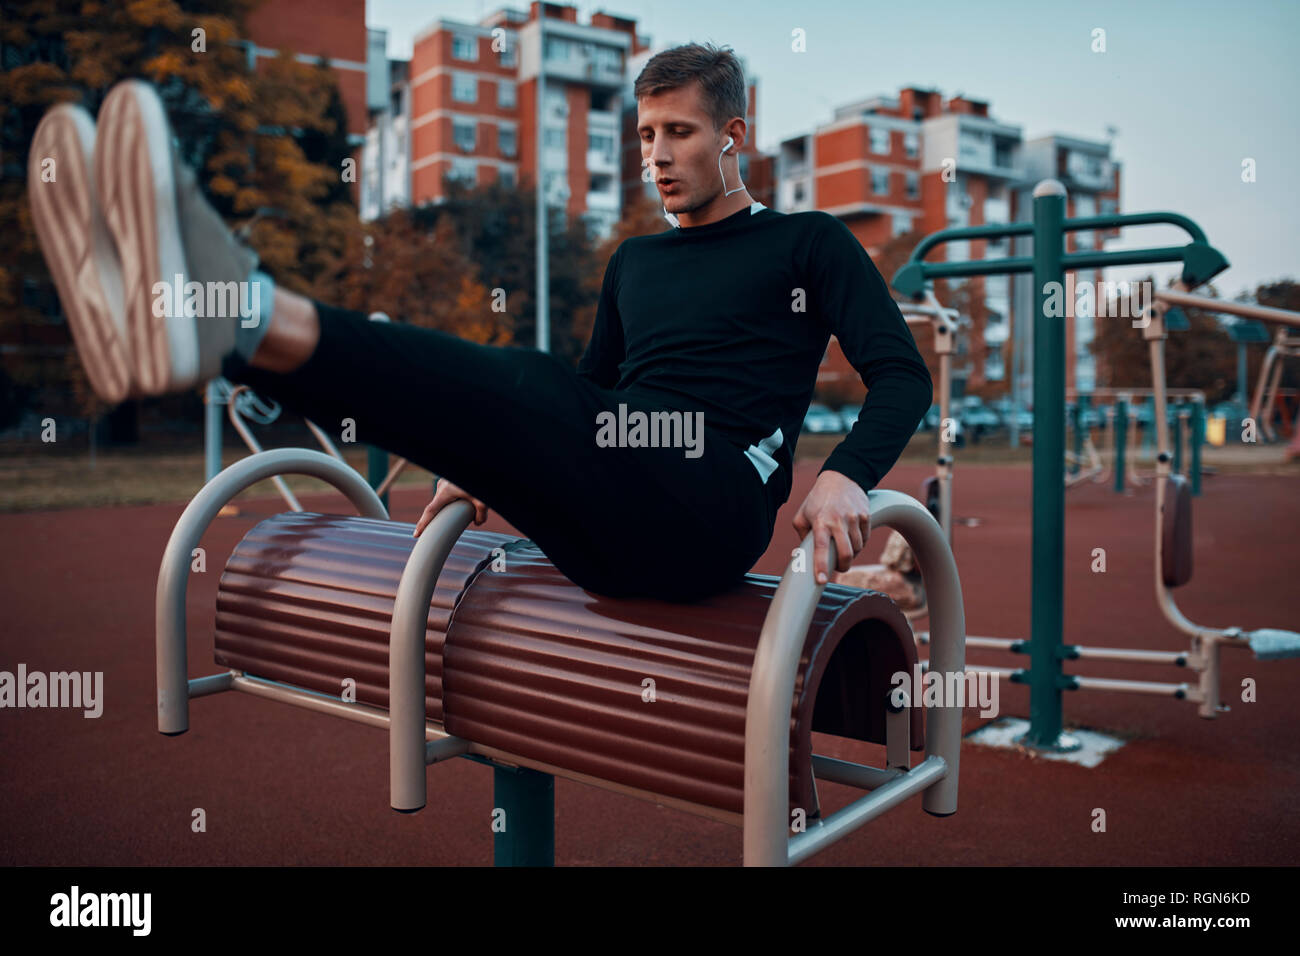 Sportive man working out in the evening - Stock Image